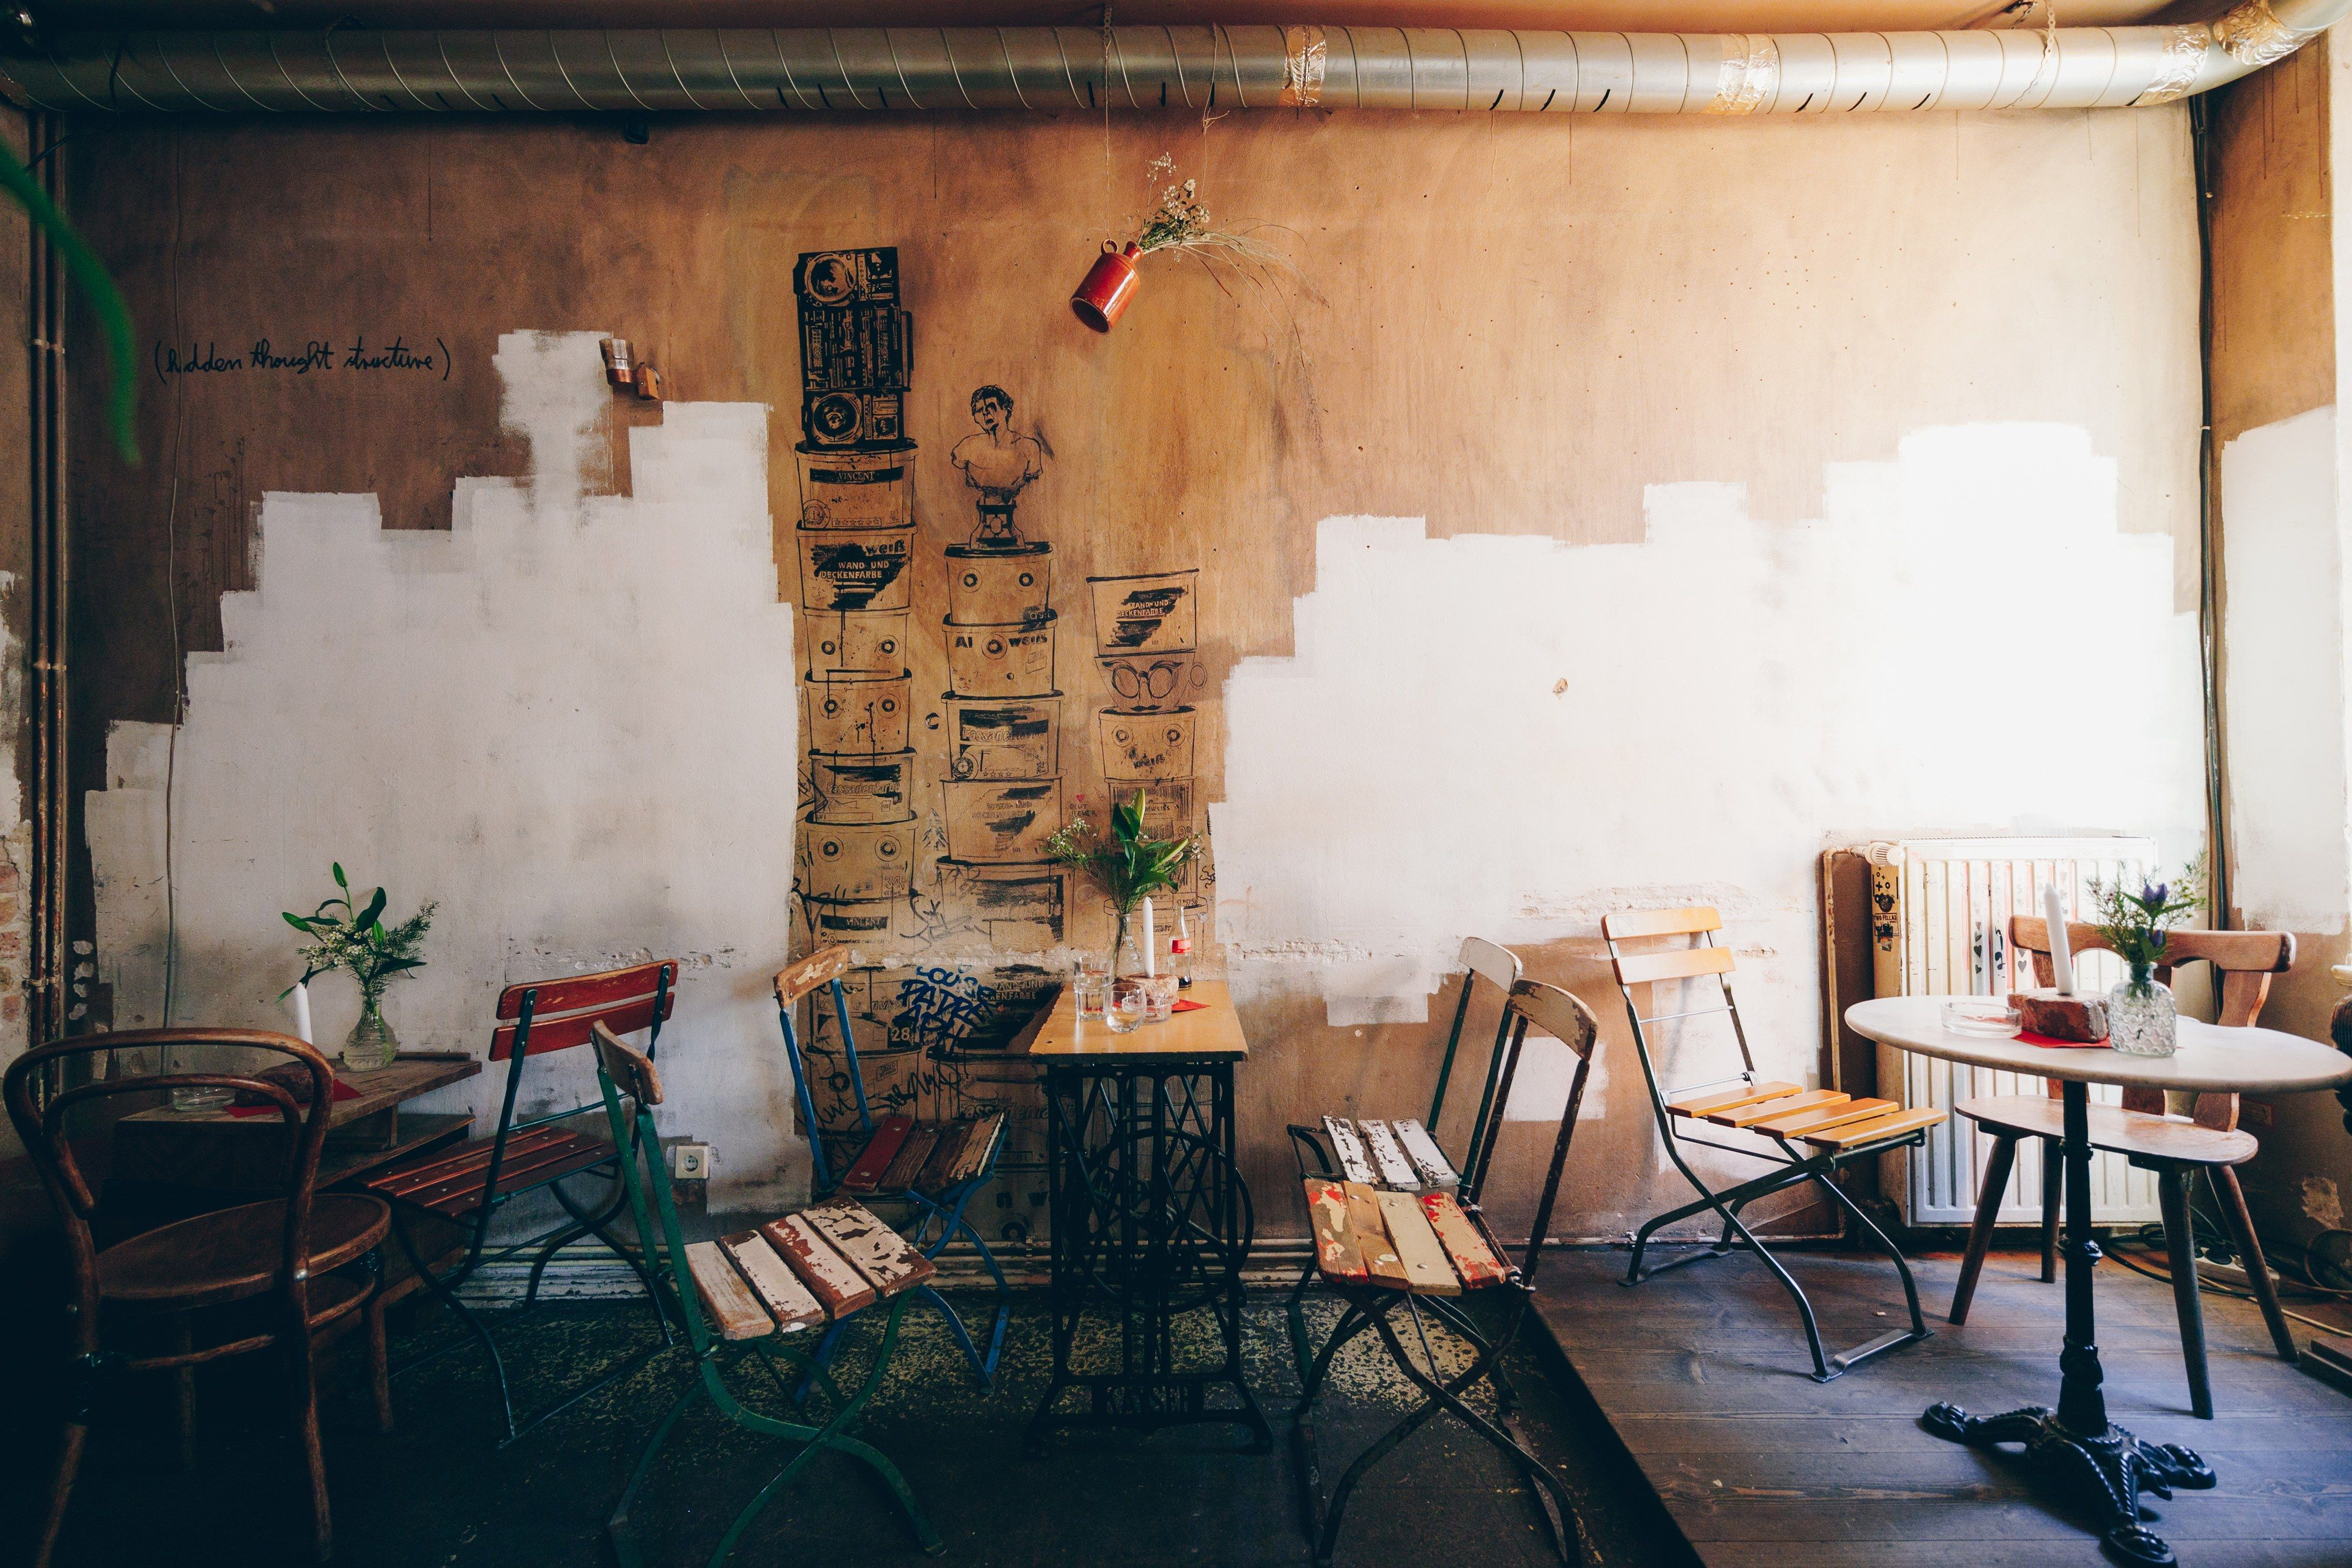 13 Best Bars in Berlin (With images) | Cool bars, Rooftop ...